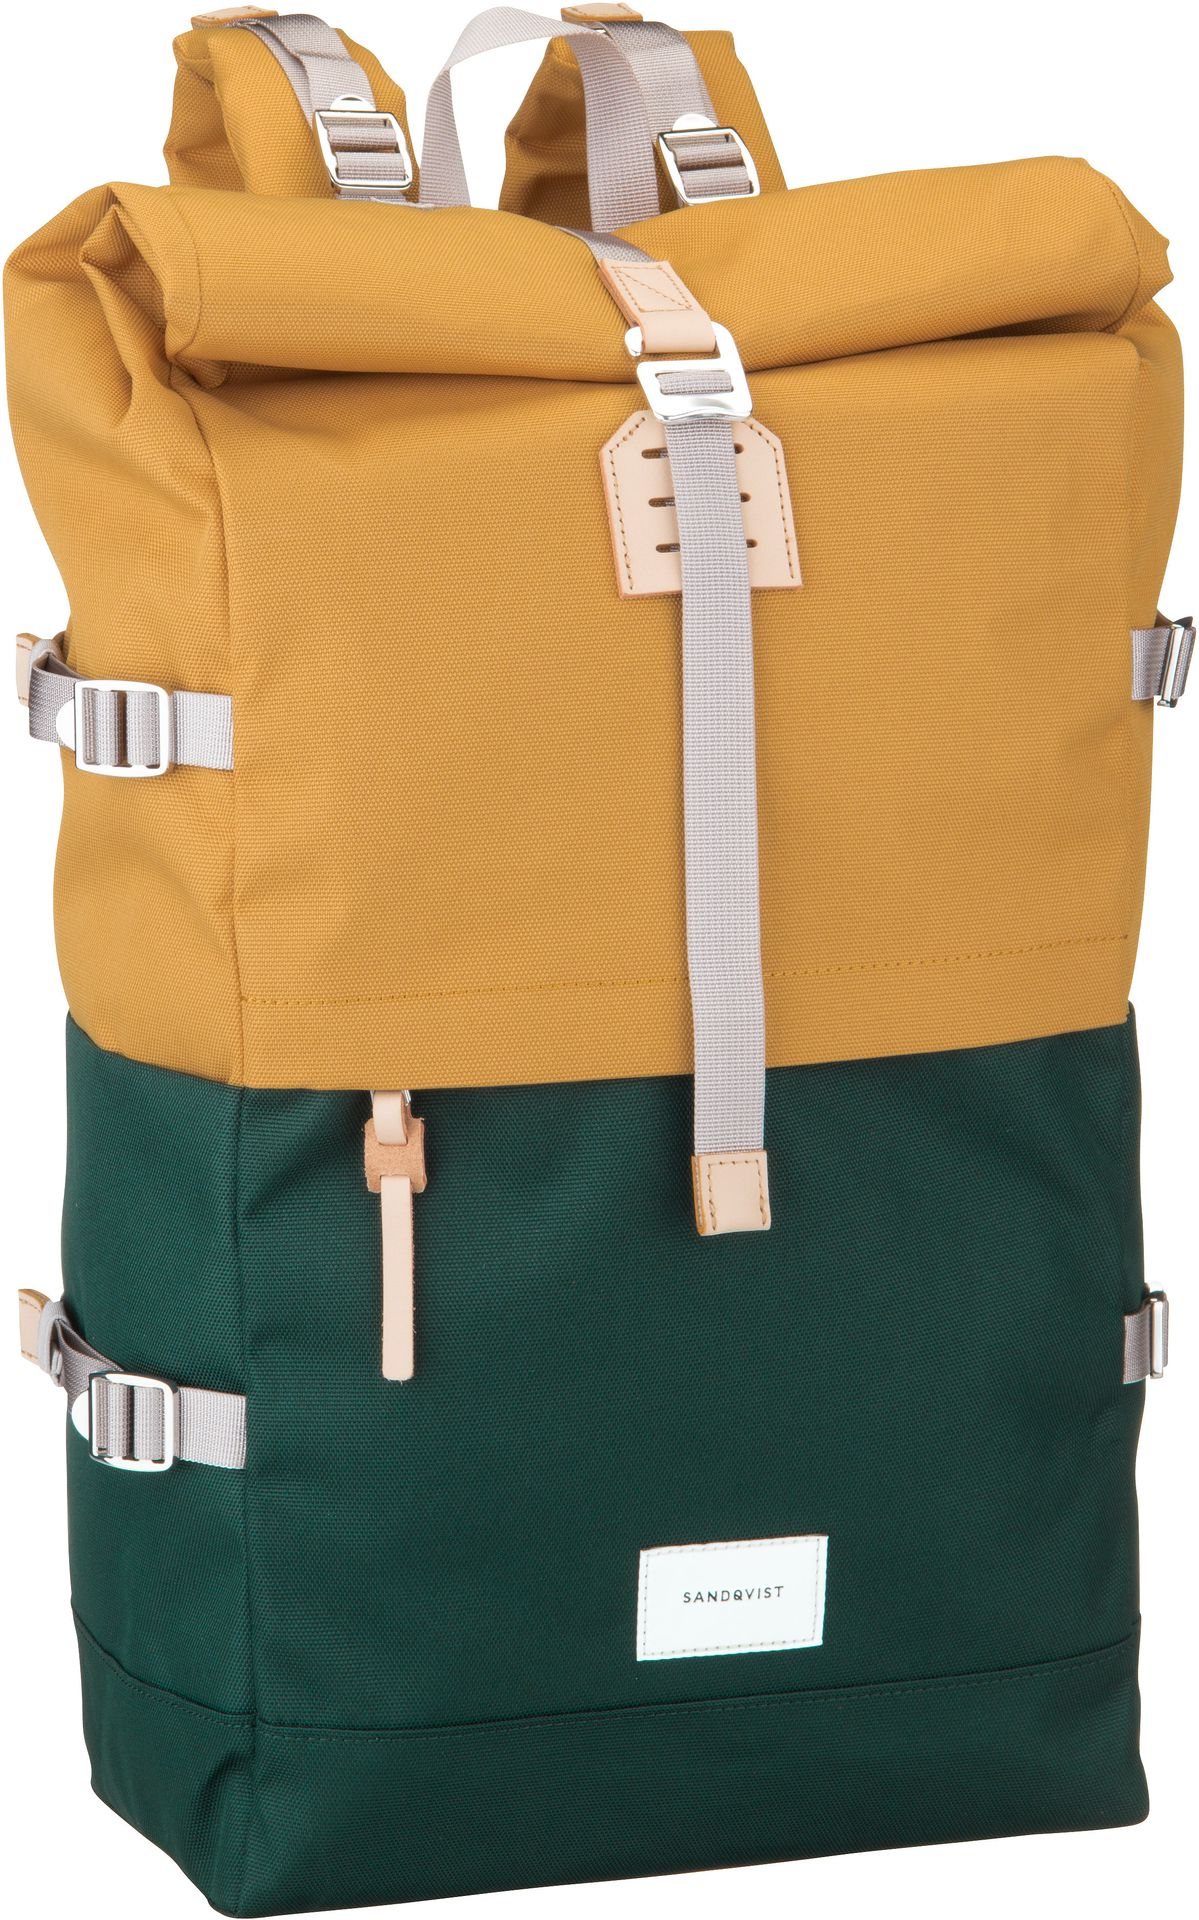 Laptoprucksack Bernt Rolltop Backpack Multi Honey Yellow/Dark Green (20 Liter)